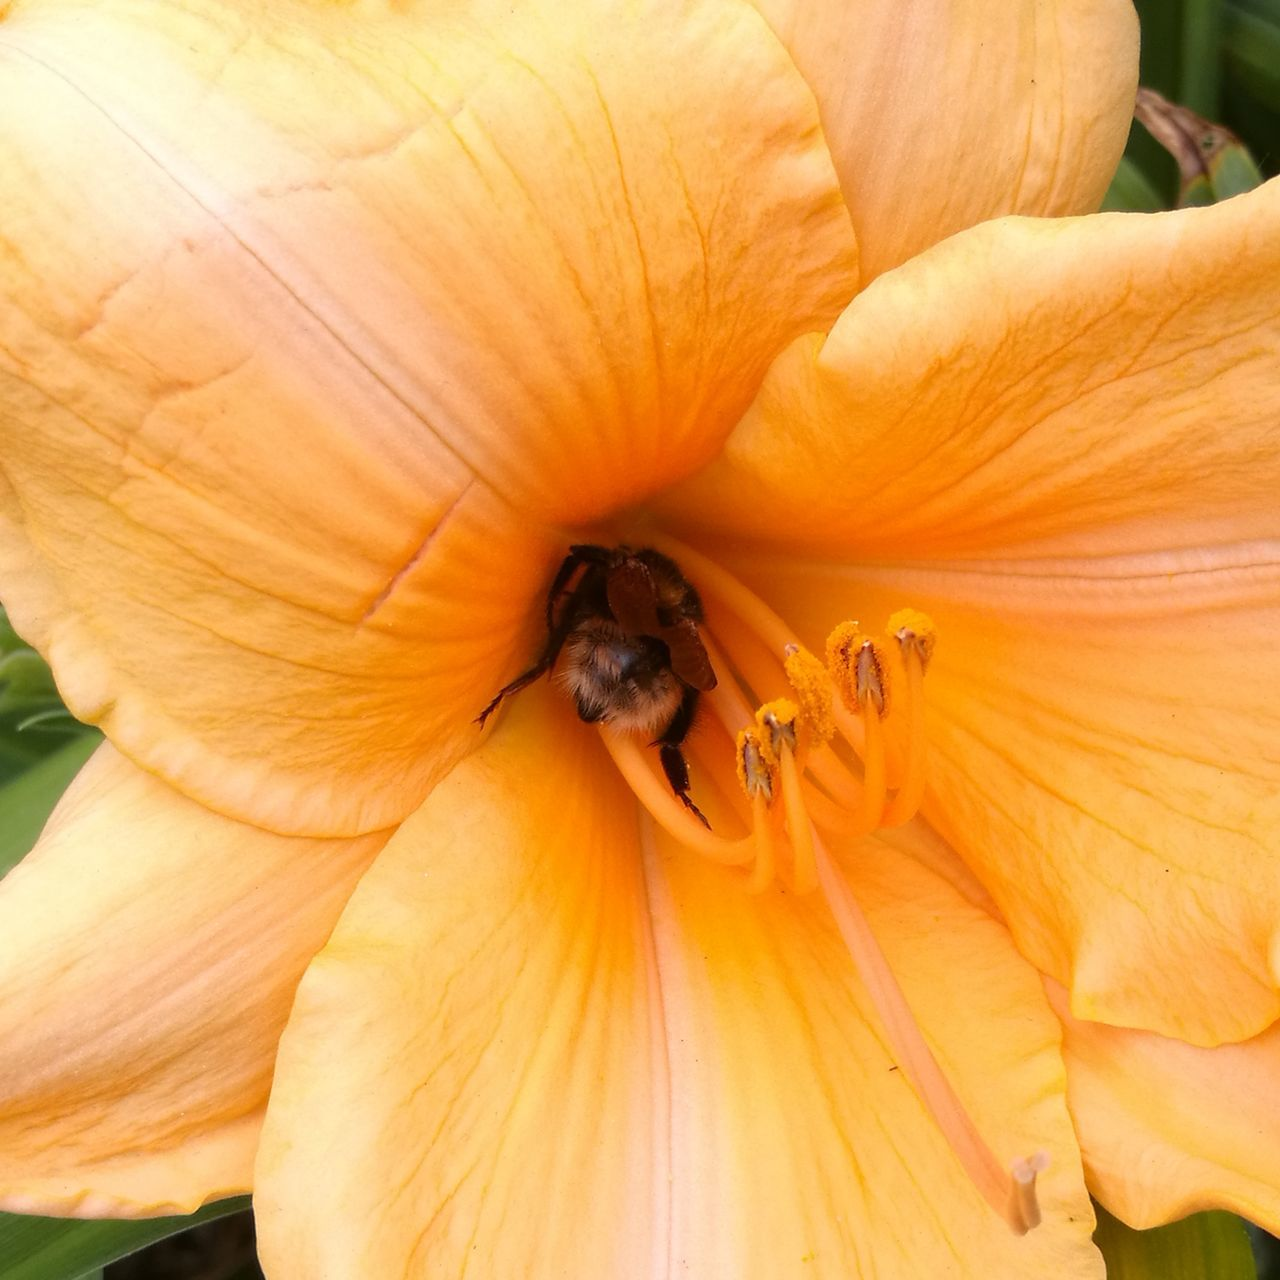 insect, animals in the wild, animal themes, animal wildlife, bee, one animal, wildlife, nature, honey bee, orange color, no people, close-up, outdoors, petal, day, pollen, fragility, growth, apiculture, beauty in nature, flower, flower head, freshness, pollination, buzzing